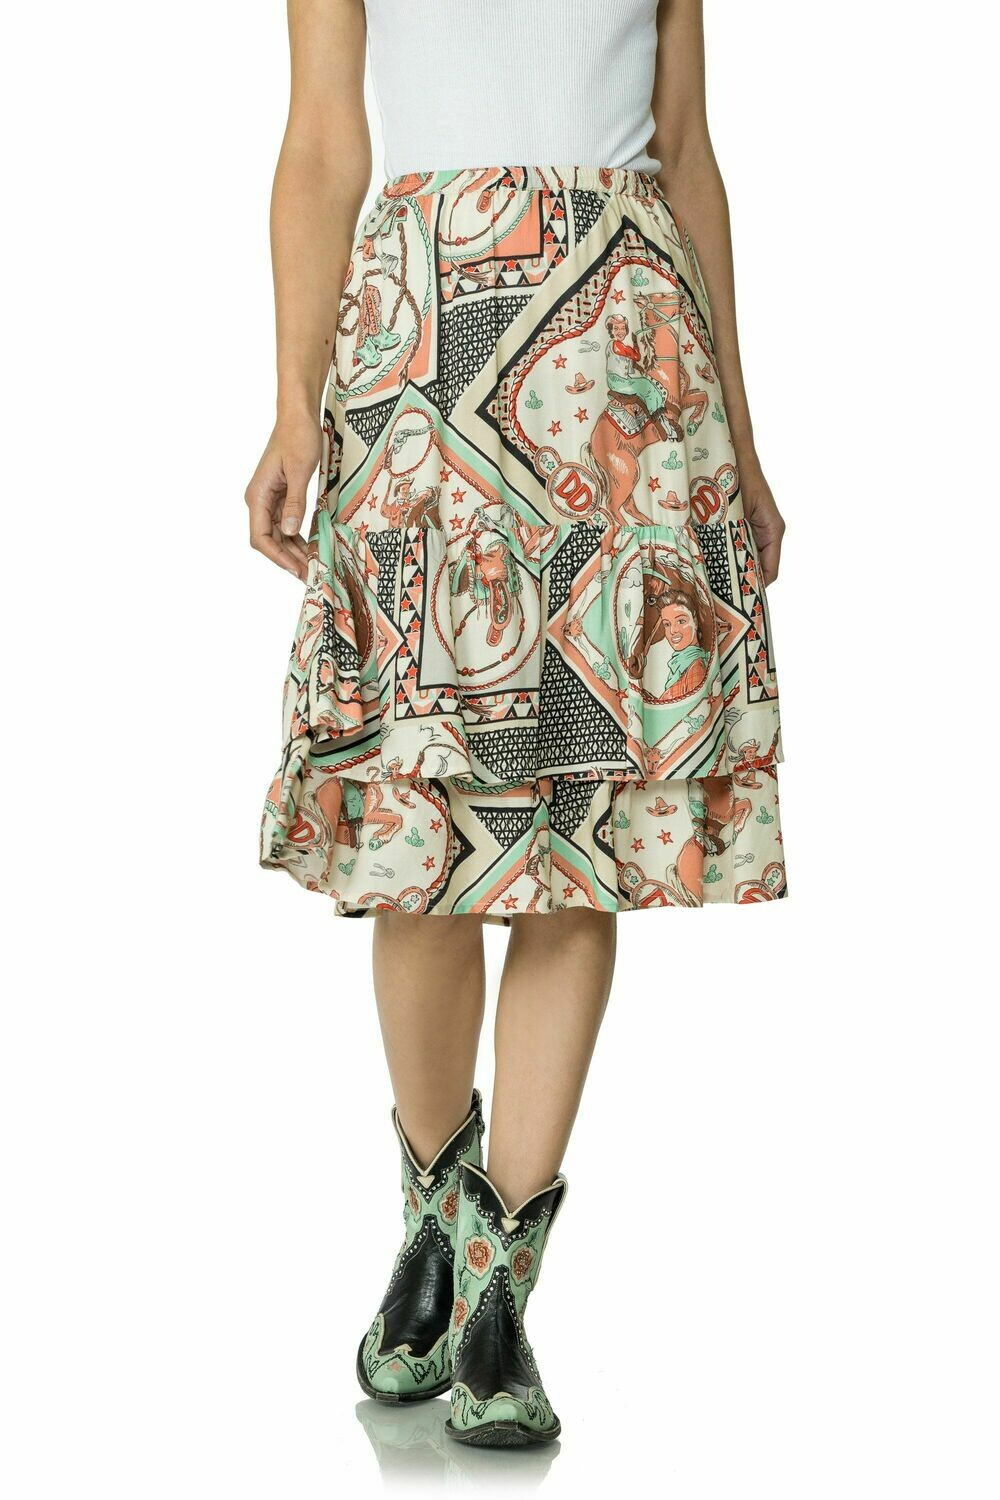 Double D S1724 Gayle Wild Rags Skirt